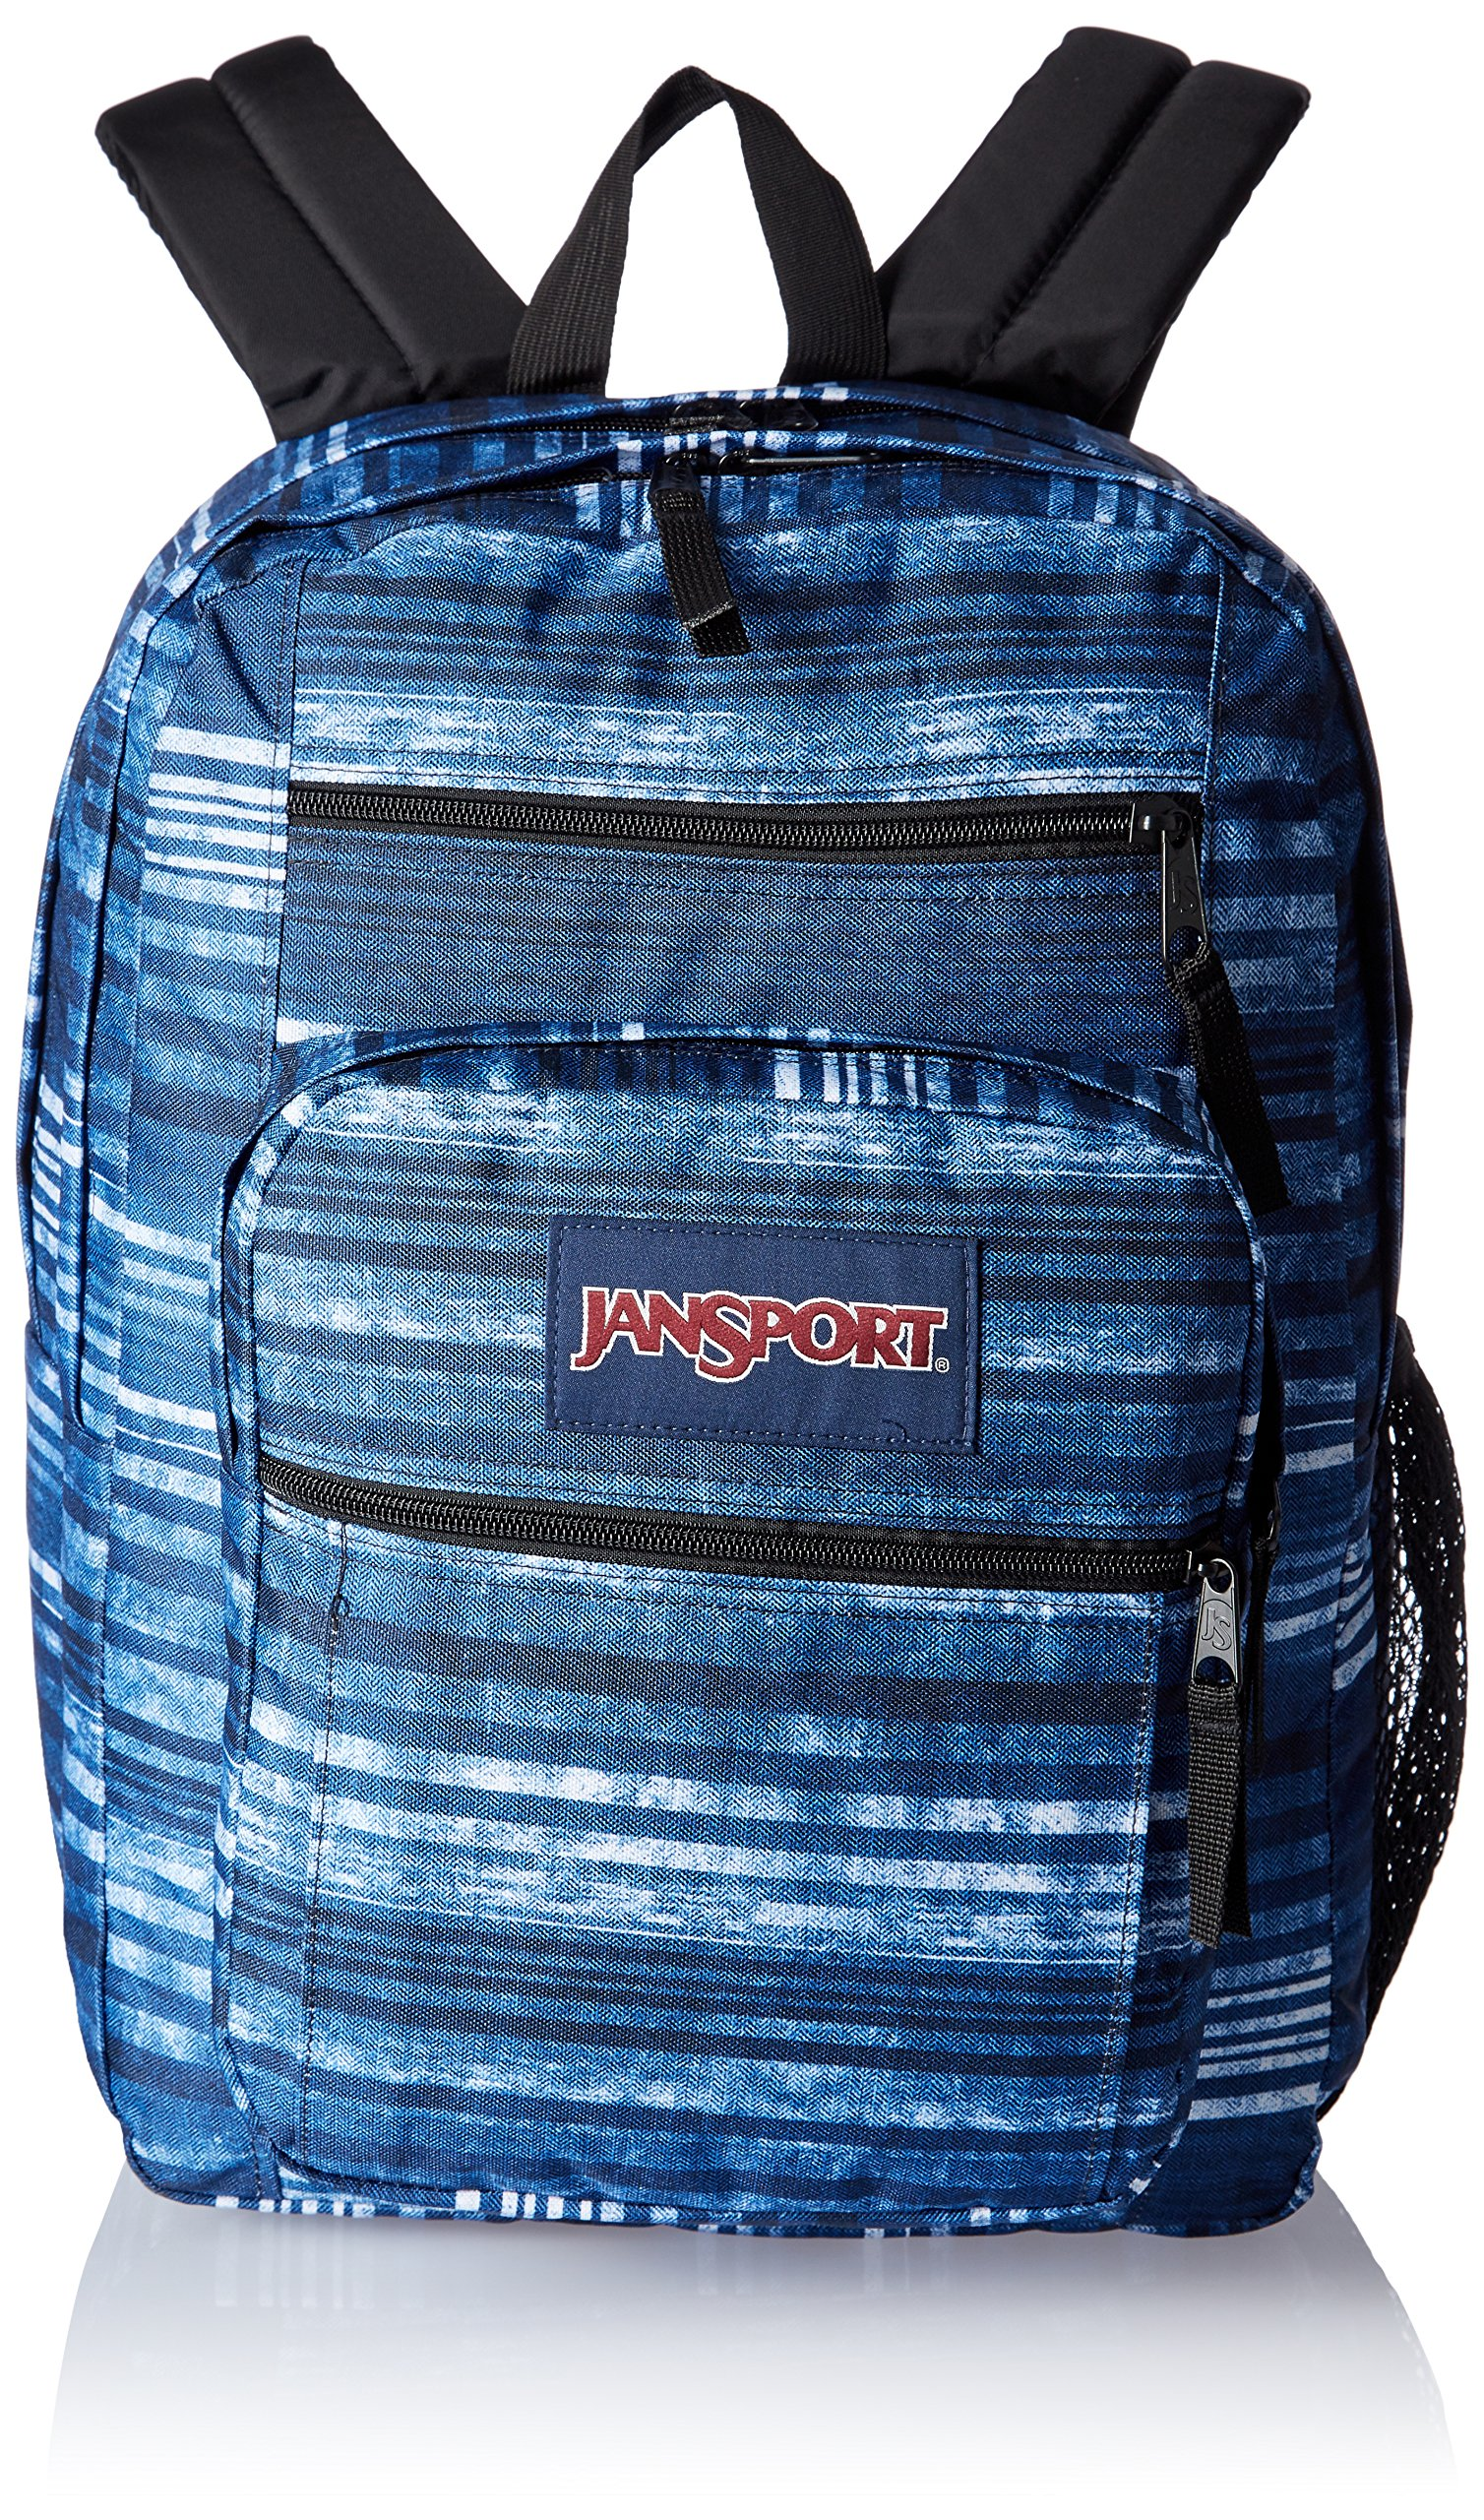 JanSport Big Student Backpack- Discontinued Colors (Multi Variegated Stripe)